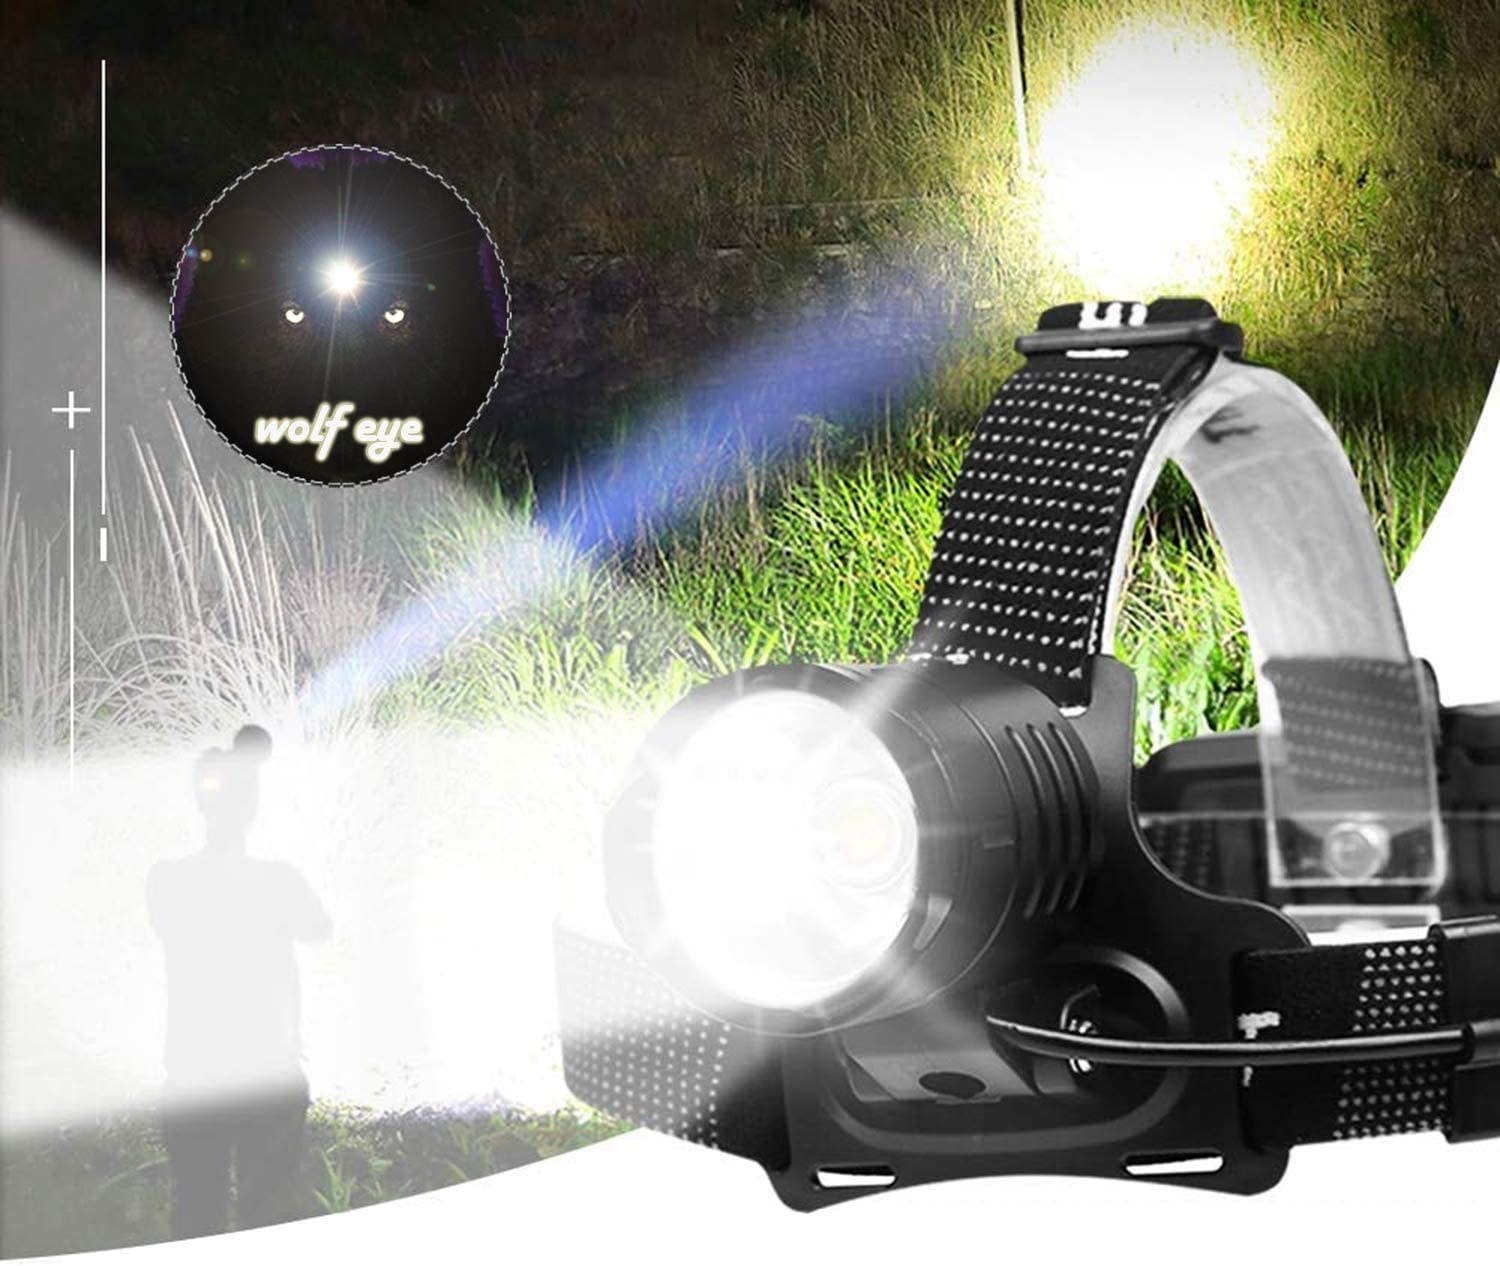 Rechargeable Headlamp, 10000 Lumens Super Bright Led Headlamp with Batteries Included, Zoomable, 3 Modes, Waterproof Best Headlights for Adults, Camping, Hiking, Exploration, Outdoor: Home & Kitchen